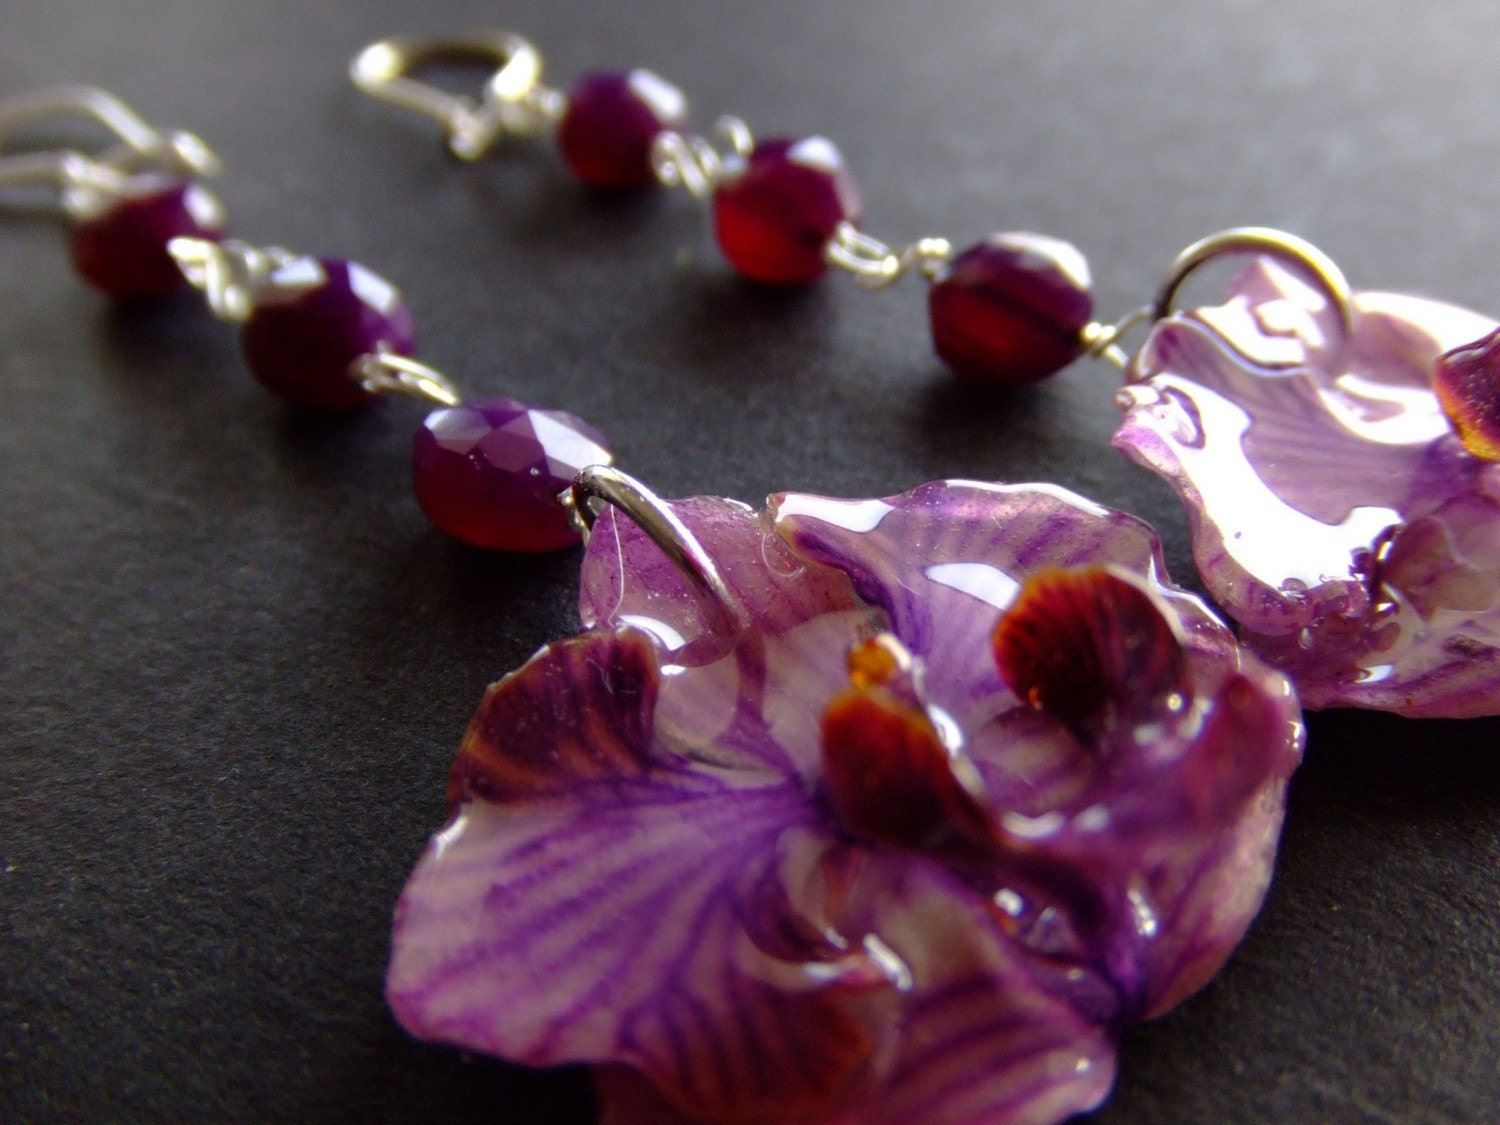 Handmade Jewelry on Etsy - BUY 2 GET 1 FREE SALE-- real preserved PASSION PURPLE ORCHID 4inch long earrings by BelaBrazilianDesigns from etsy.com